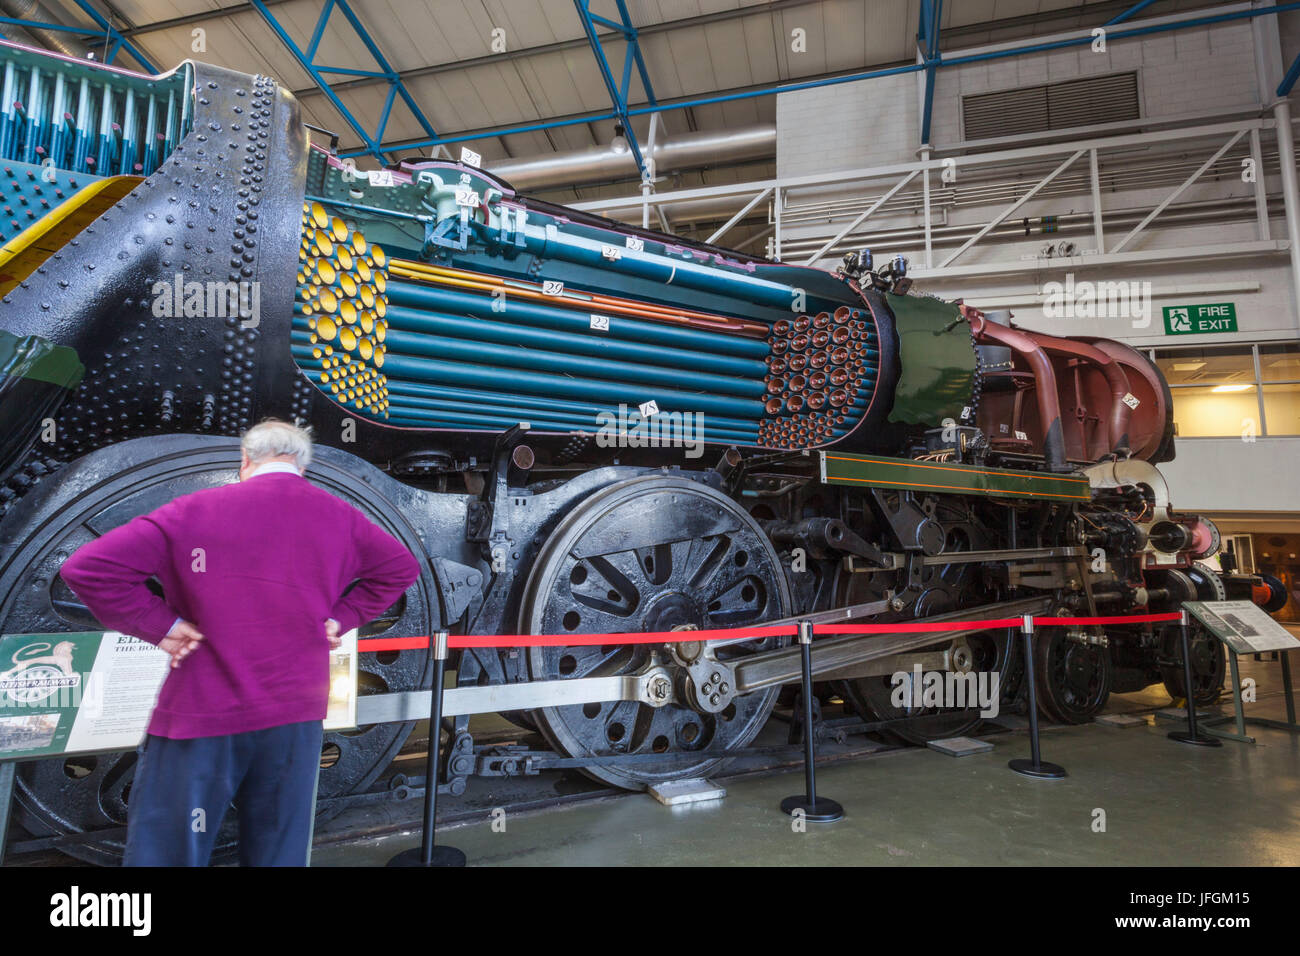 England, Yorkshire, York, National Railway Museum, Exhibit of Historical Steam Train - Stock Image